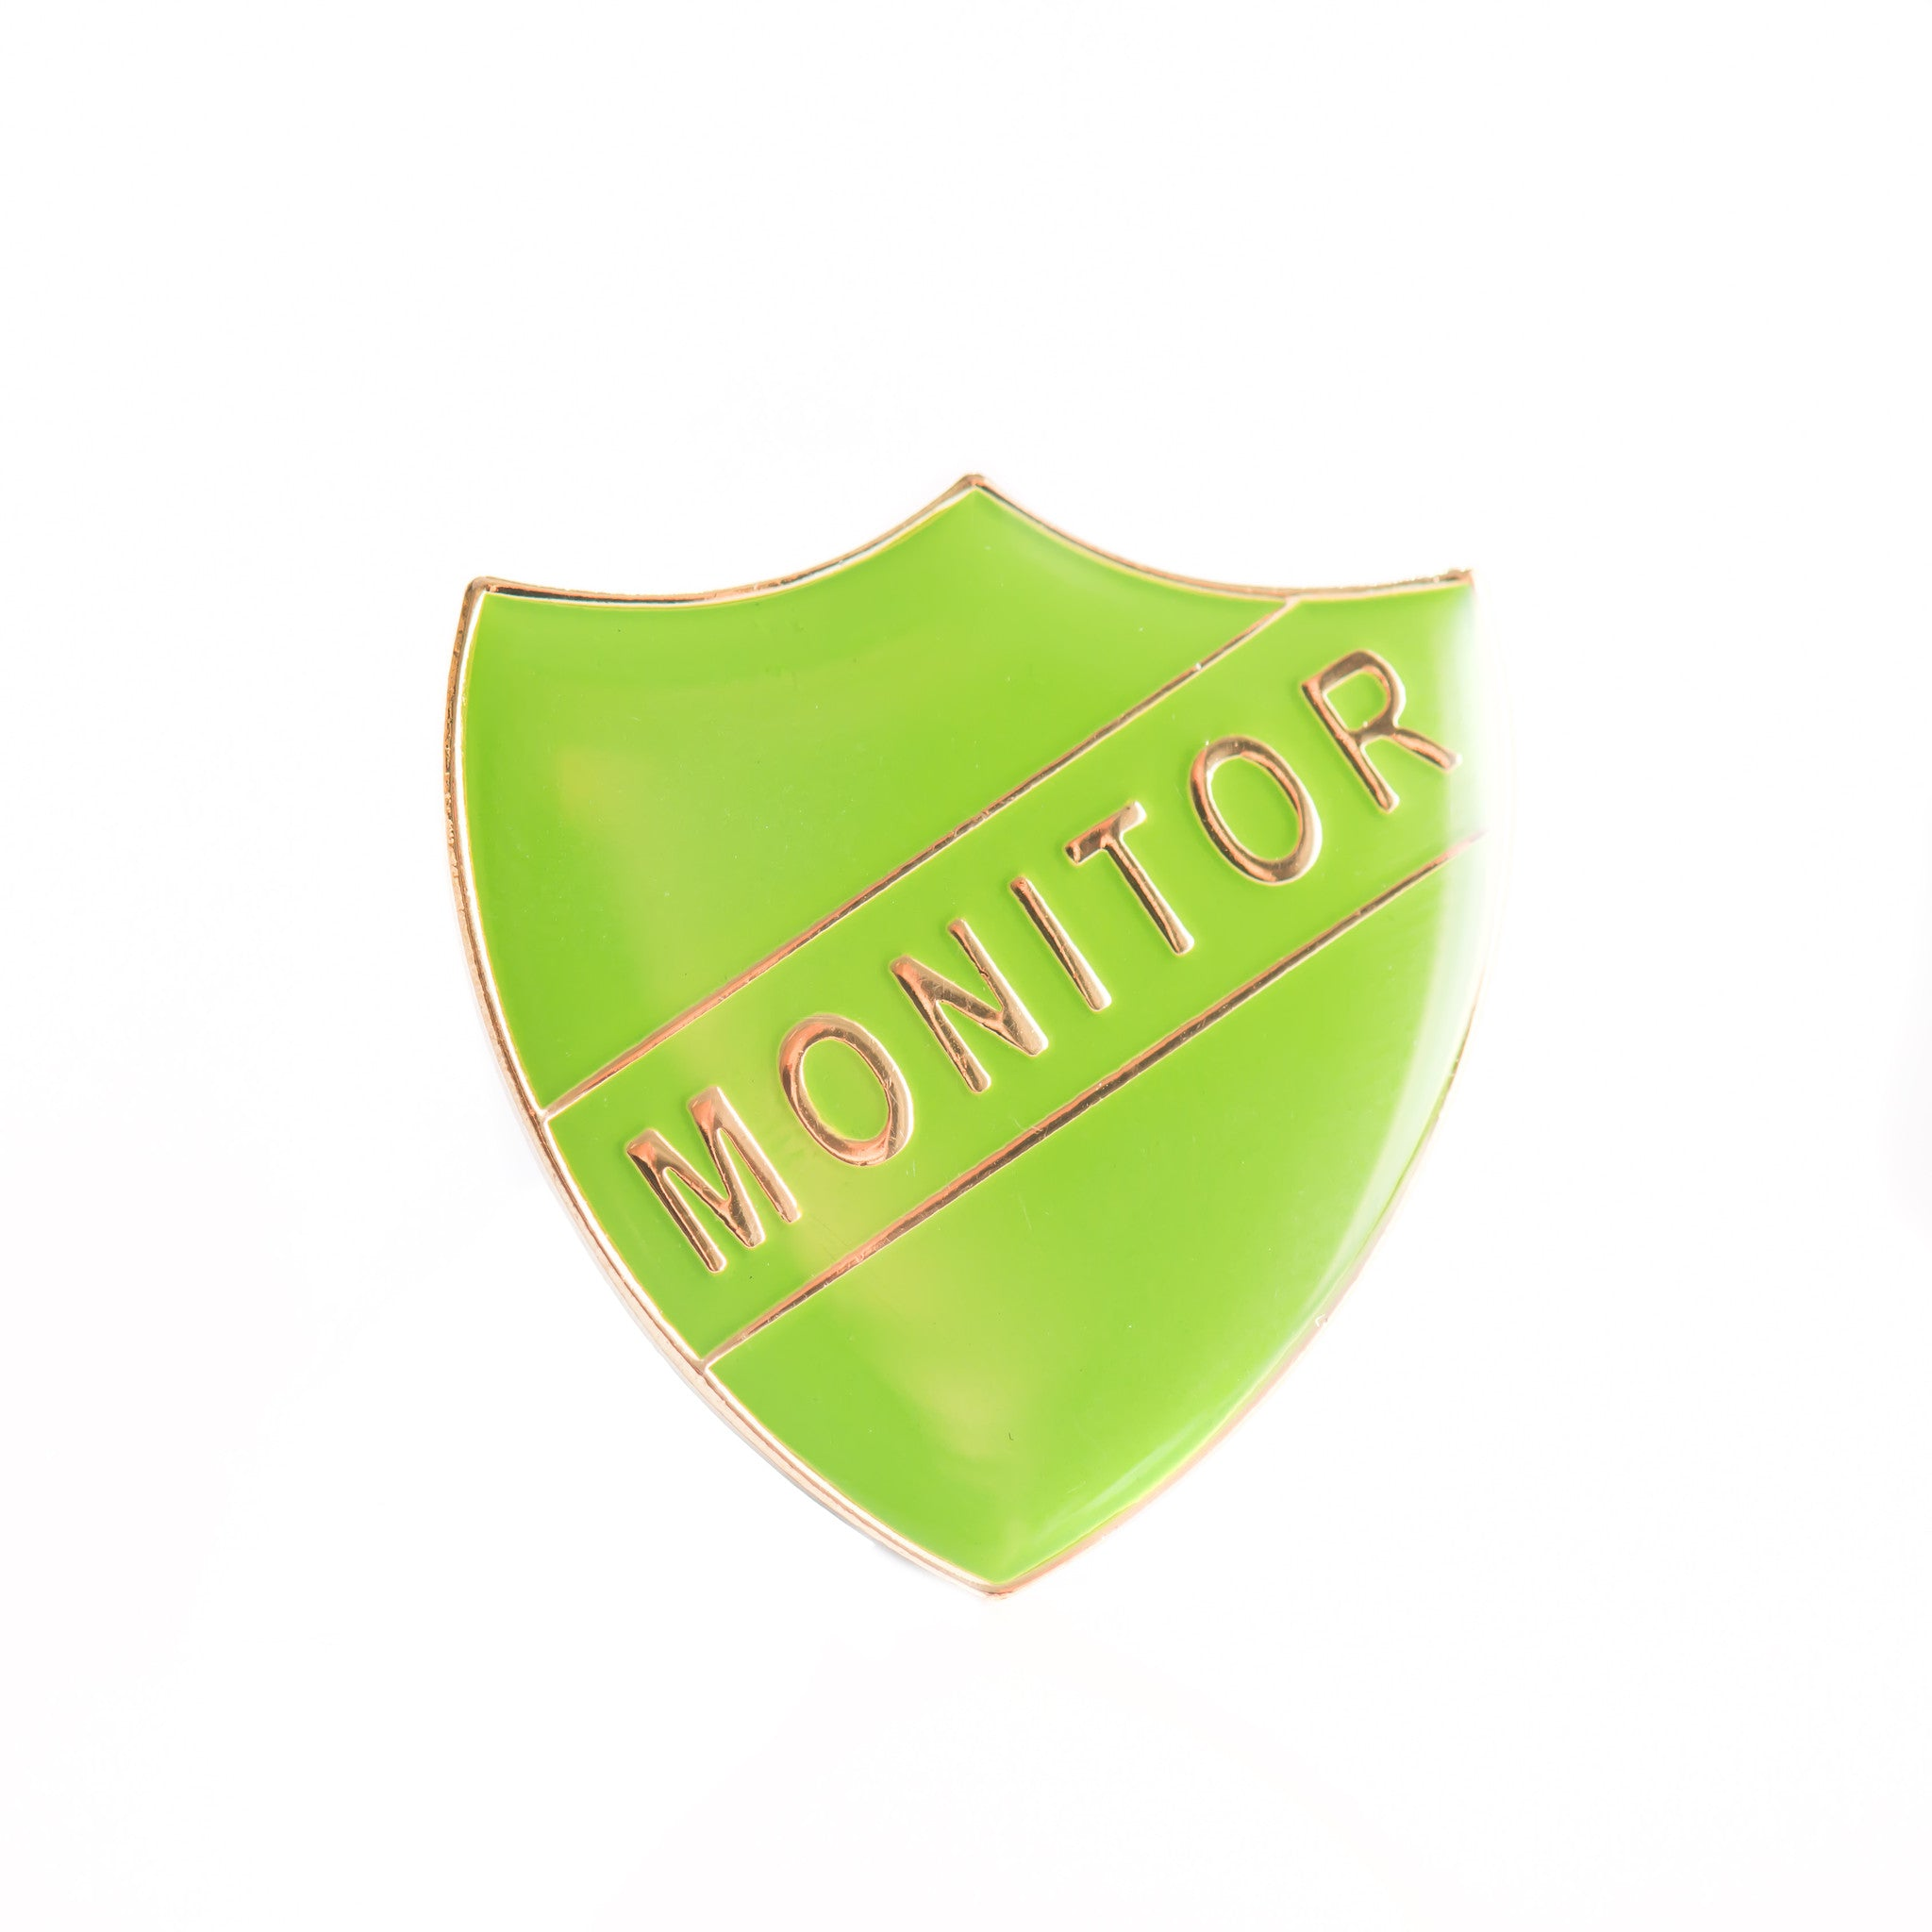 Enamel Shield Pin Badge - Monitor